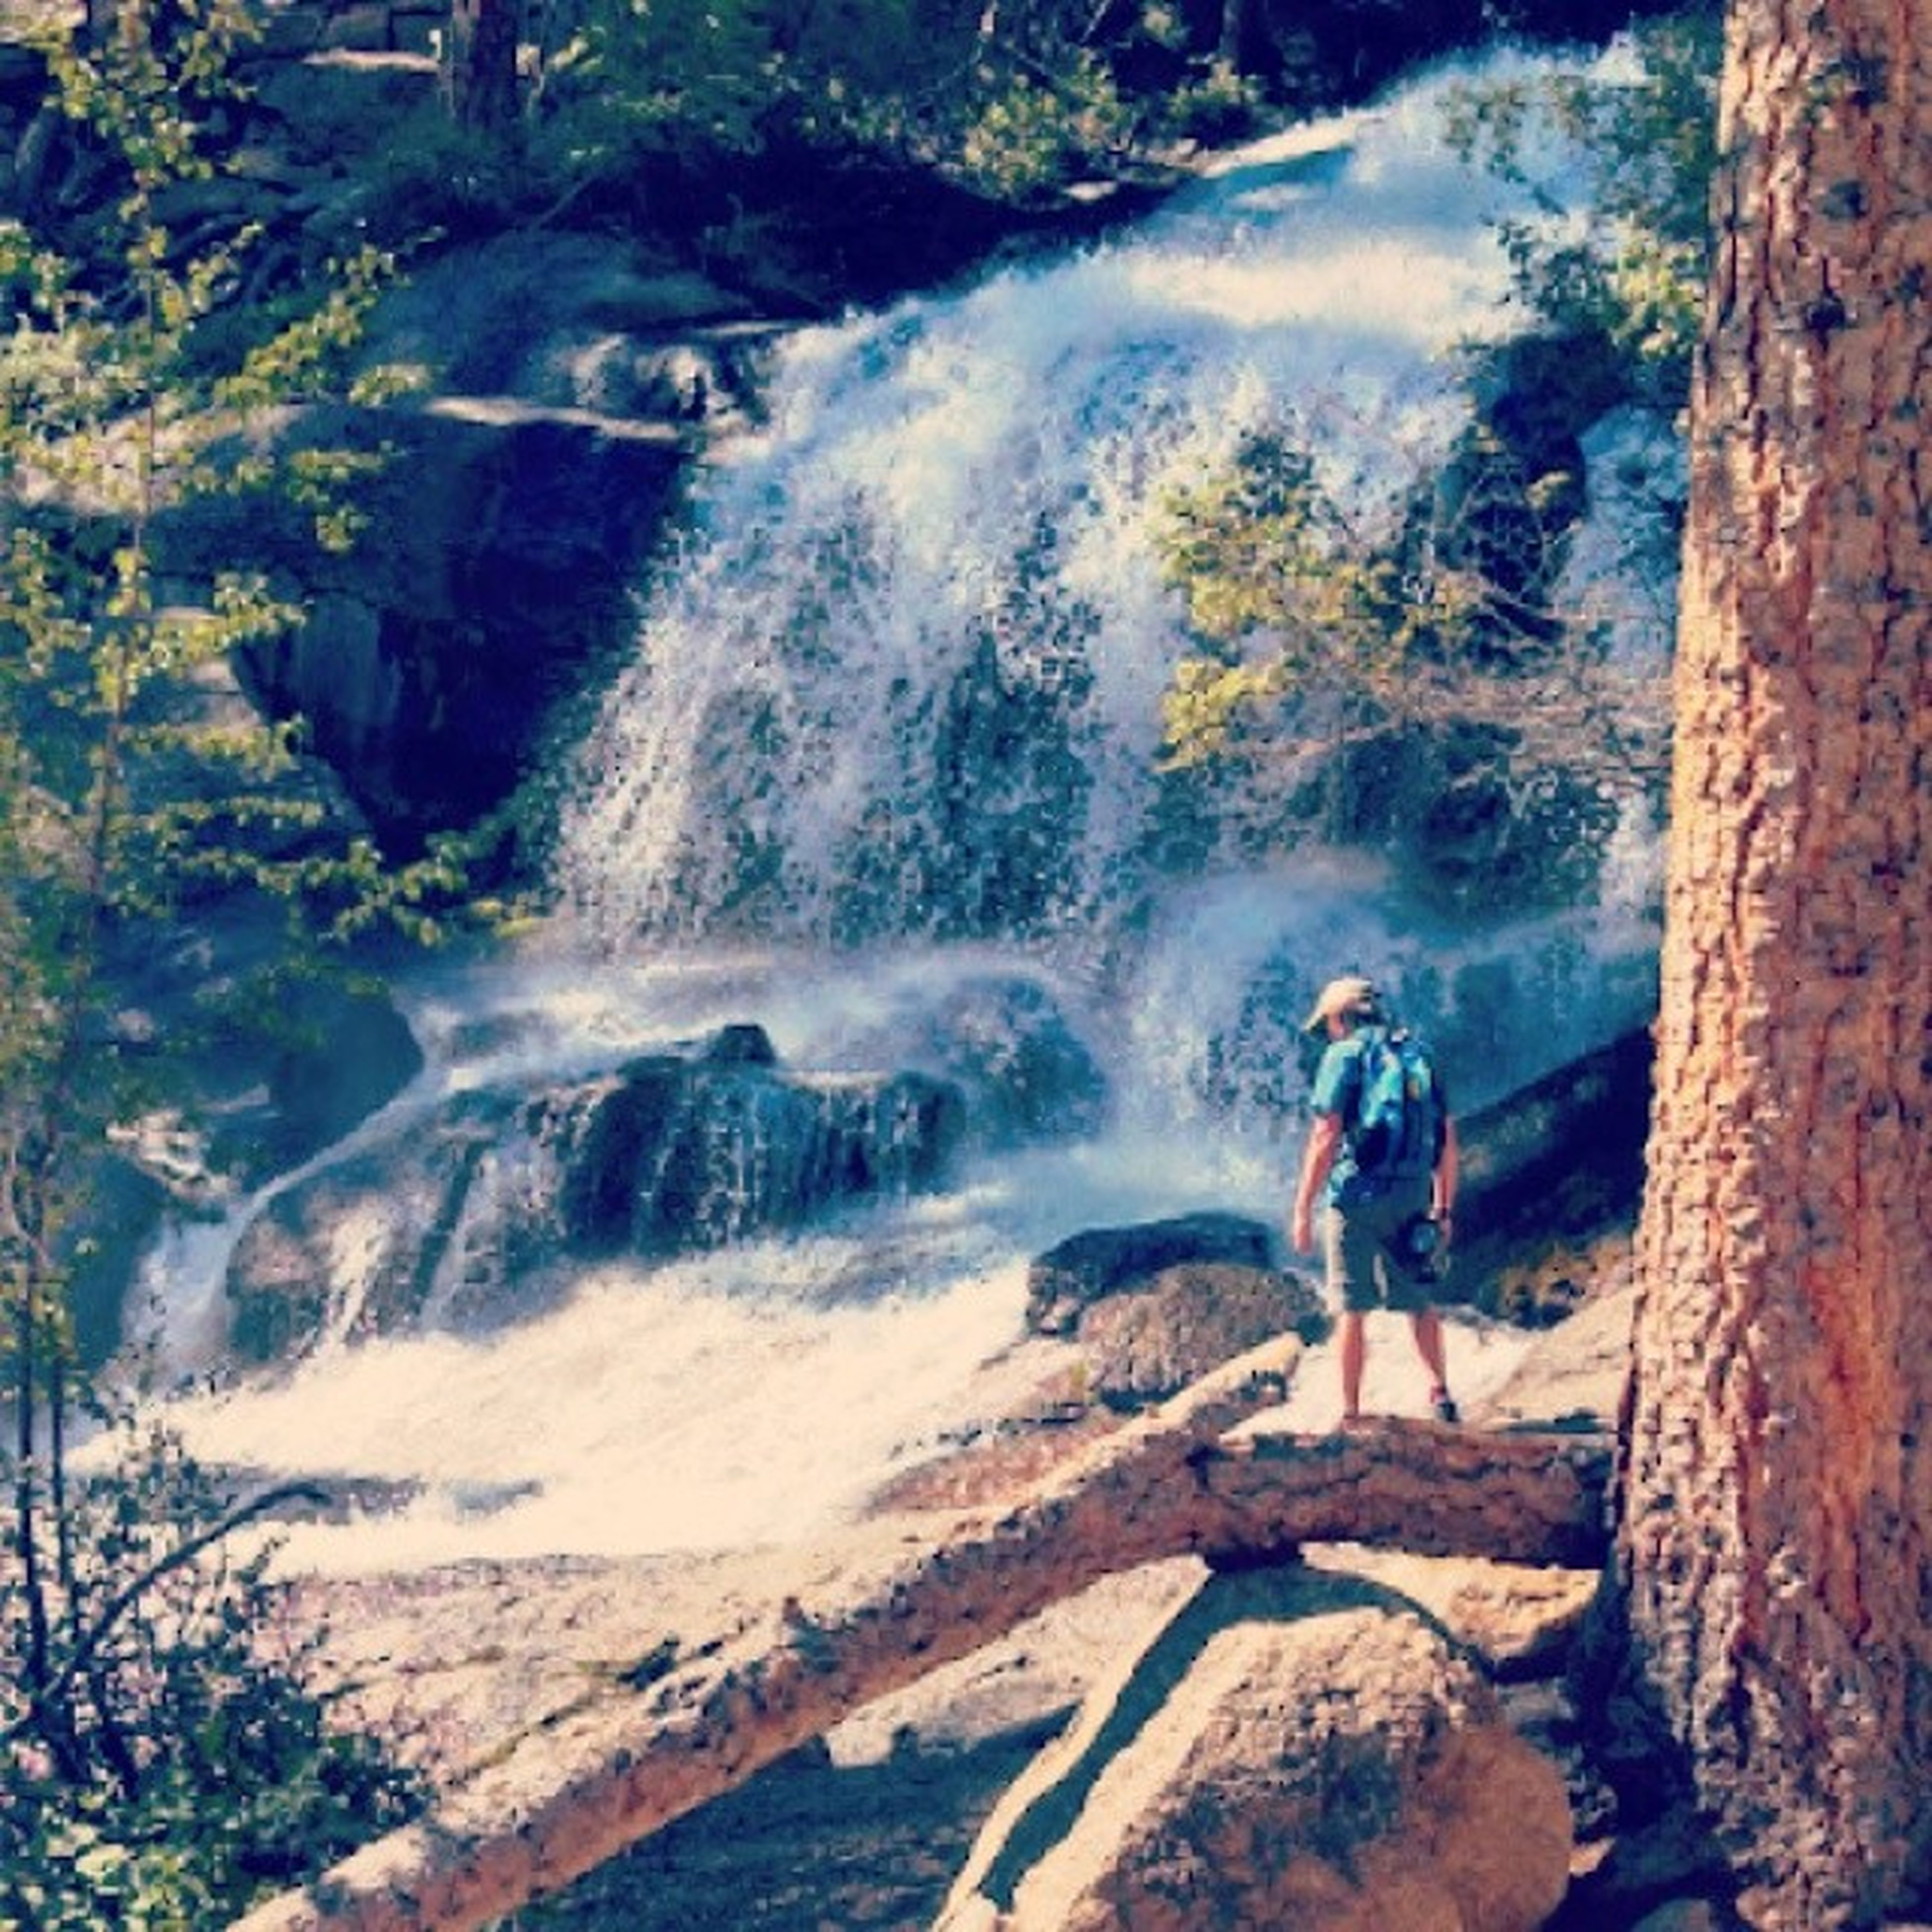 lifestyles, leisure activity, full length, water, motion, waterfall, rock - object, men, adventure, vacations, casual clothing, nature, beauty in nature, rock formation, high angle view, travel, hiking, young men